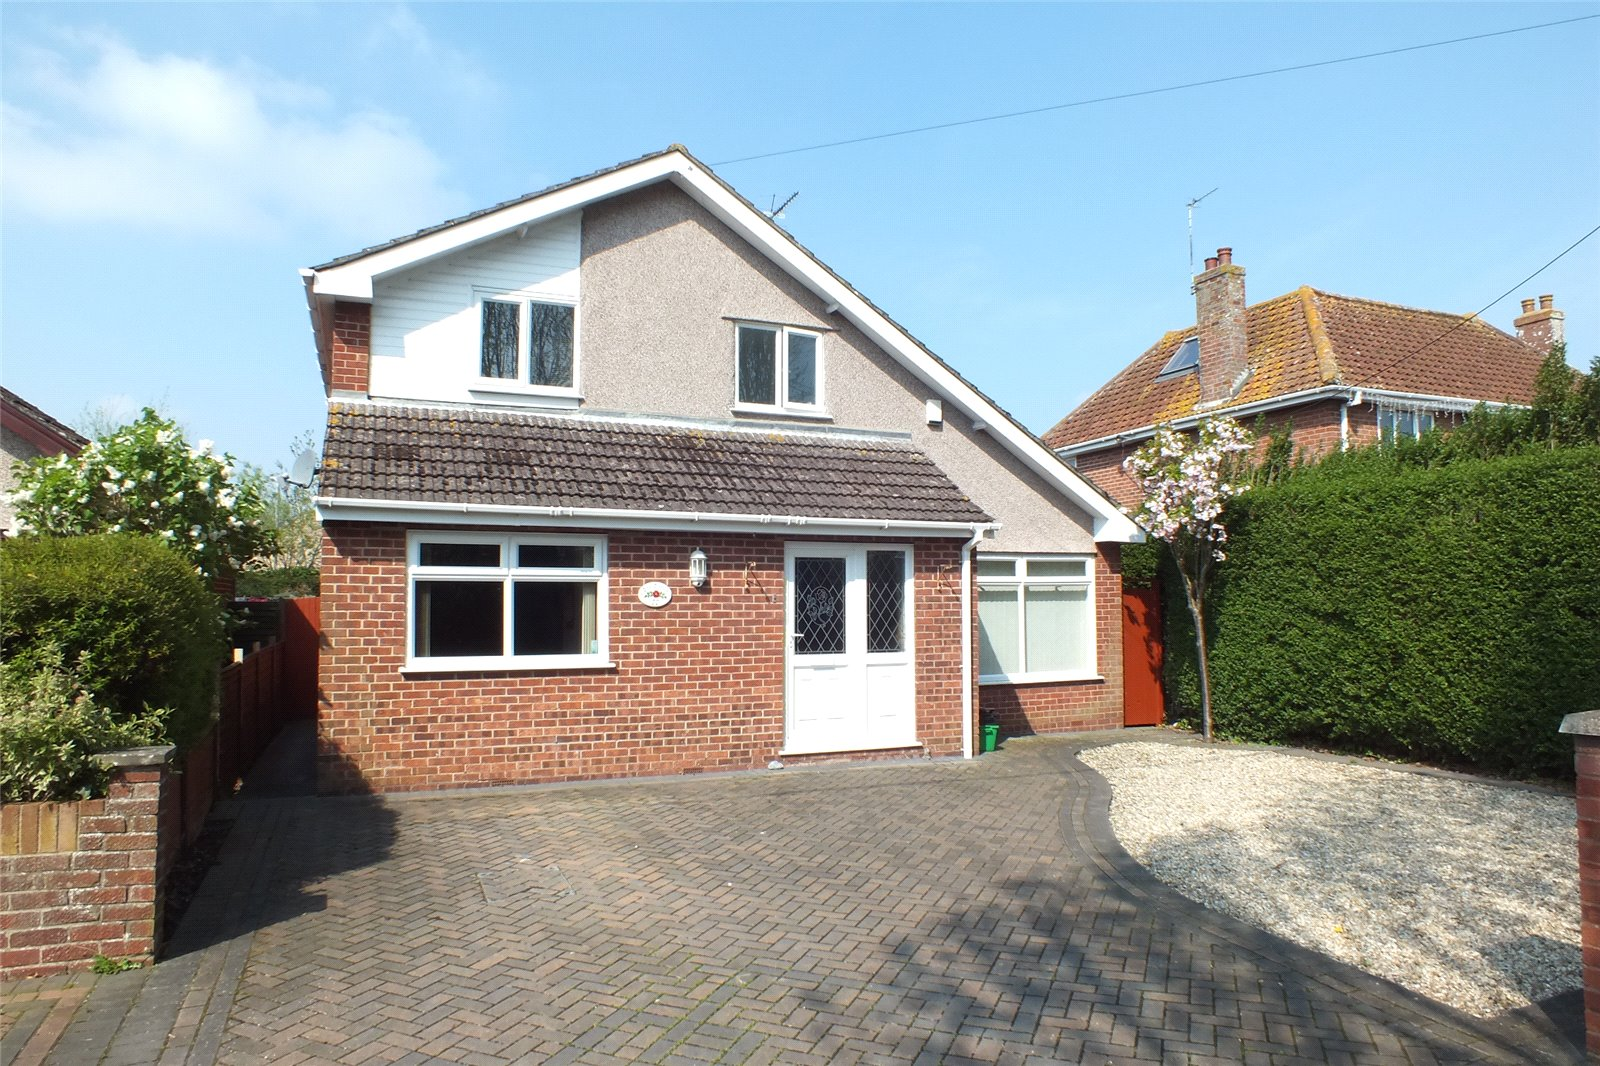 4 Bedrooms Detached House for sale in Worston Road Highbridge Somerset TA9